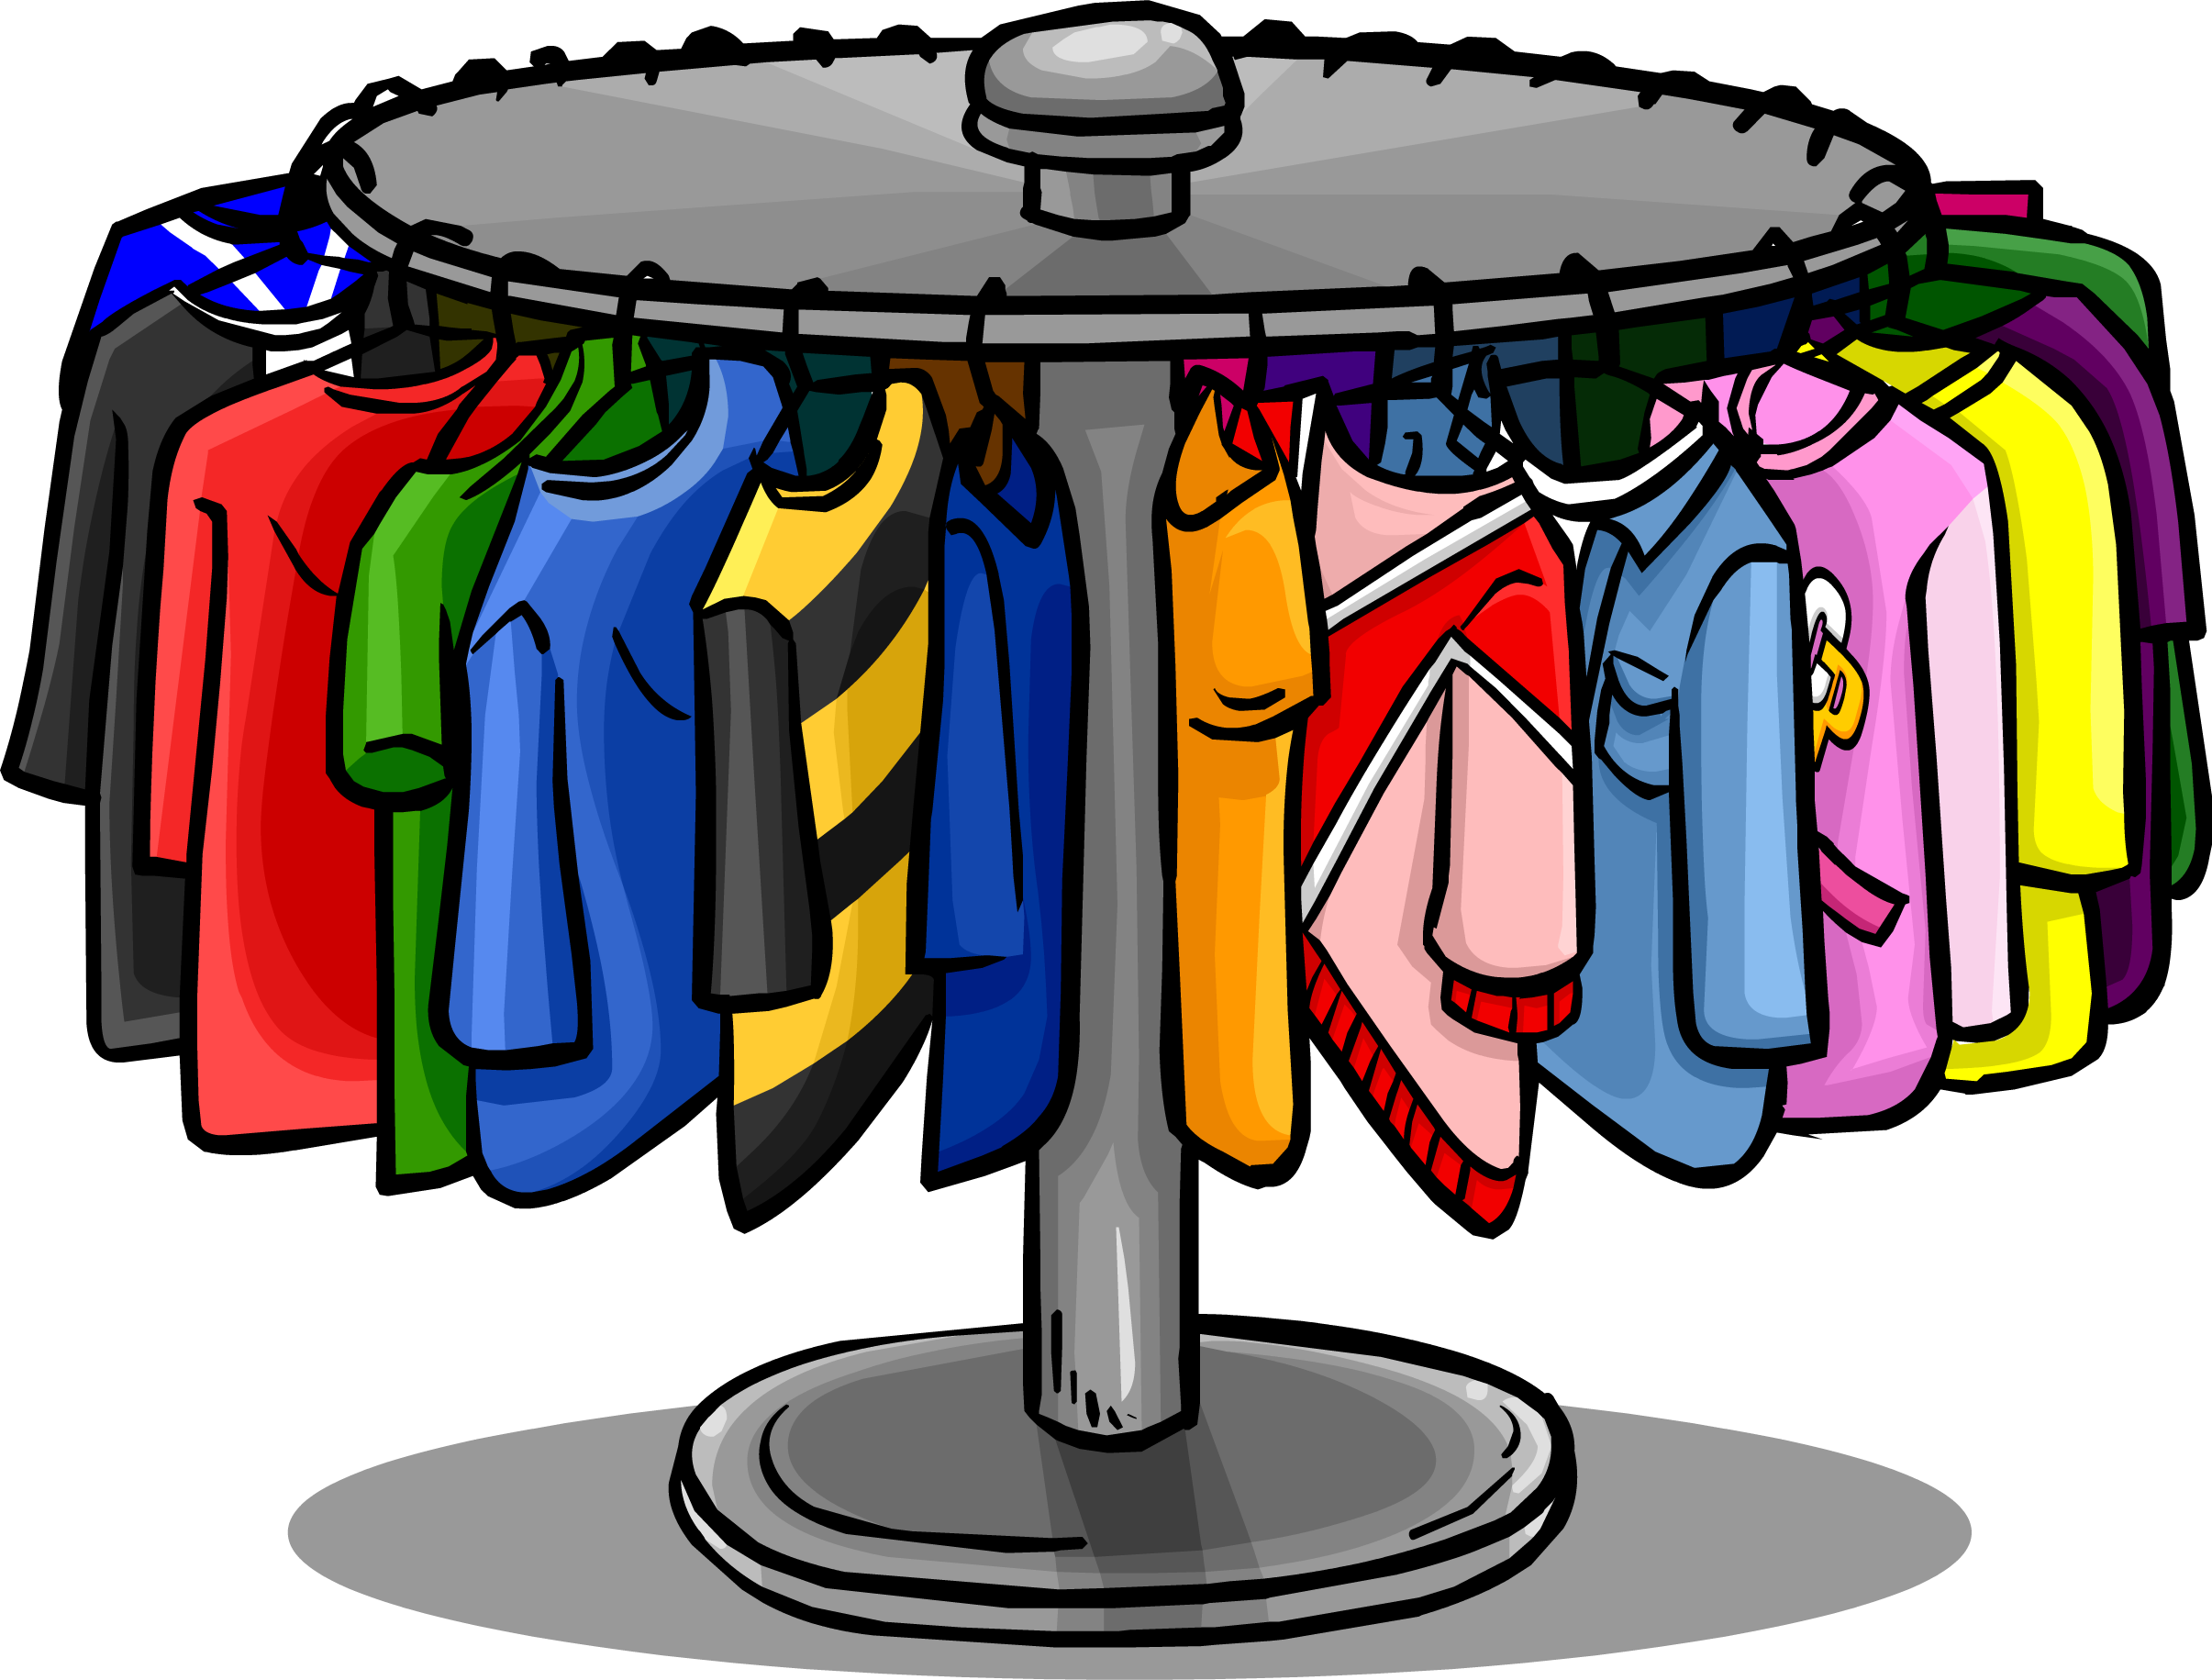 graphic royalty free Free clothing pics download. Clothes clipart.